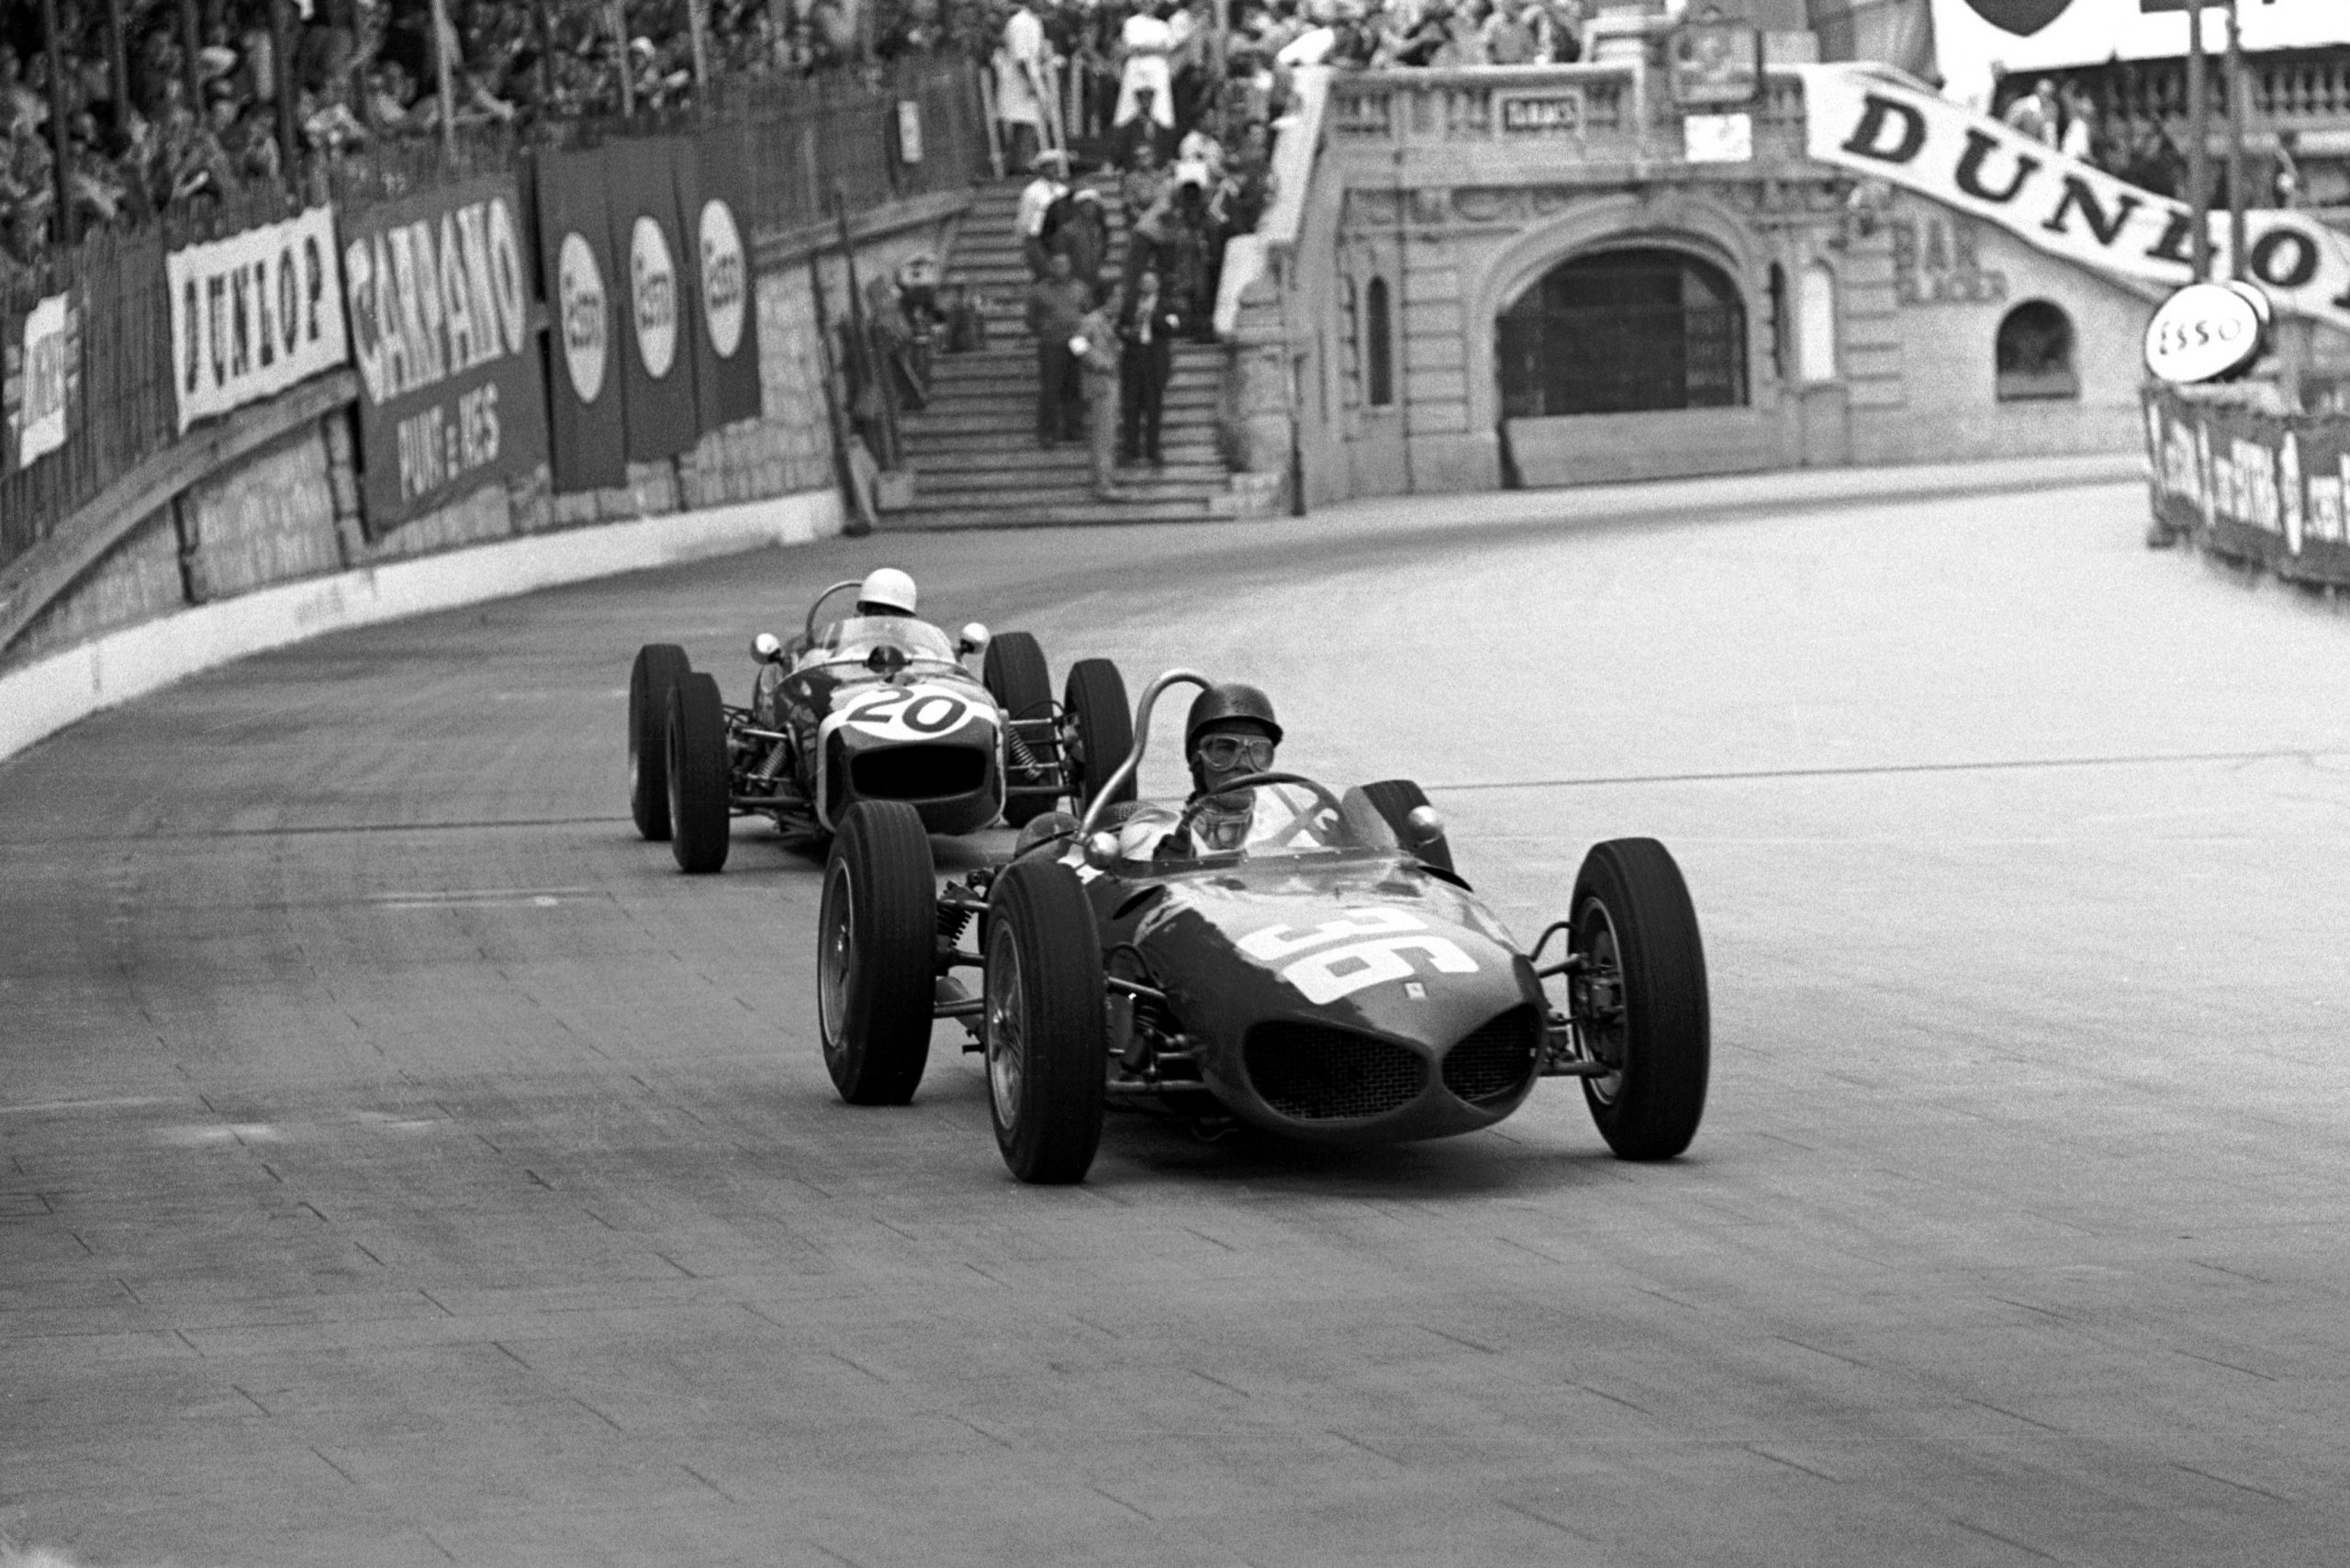 Second place finisher Richie Ginther holds off eventual winner Stirling Moss.